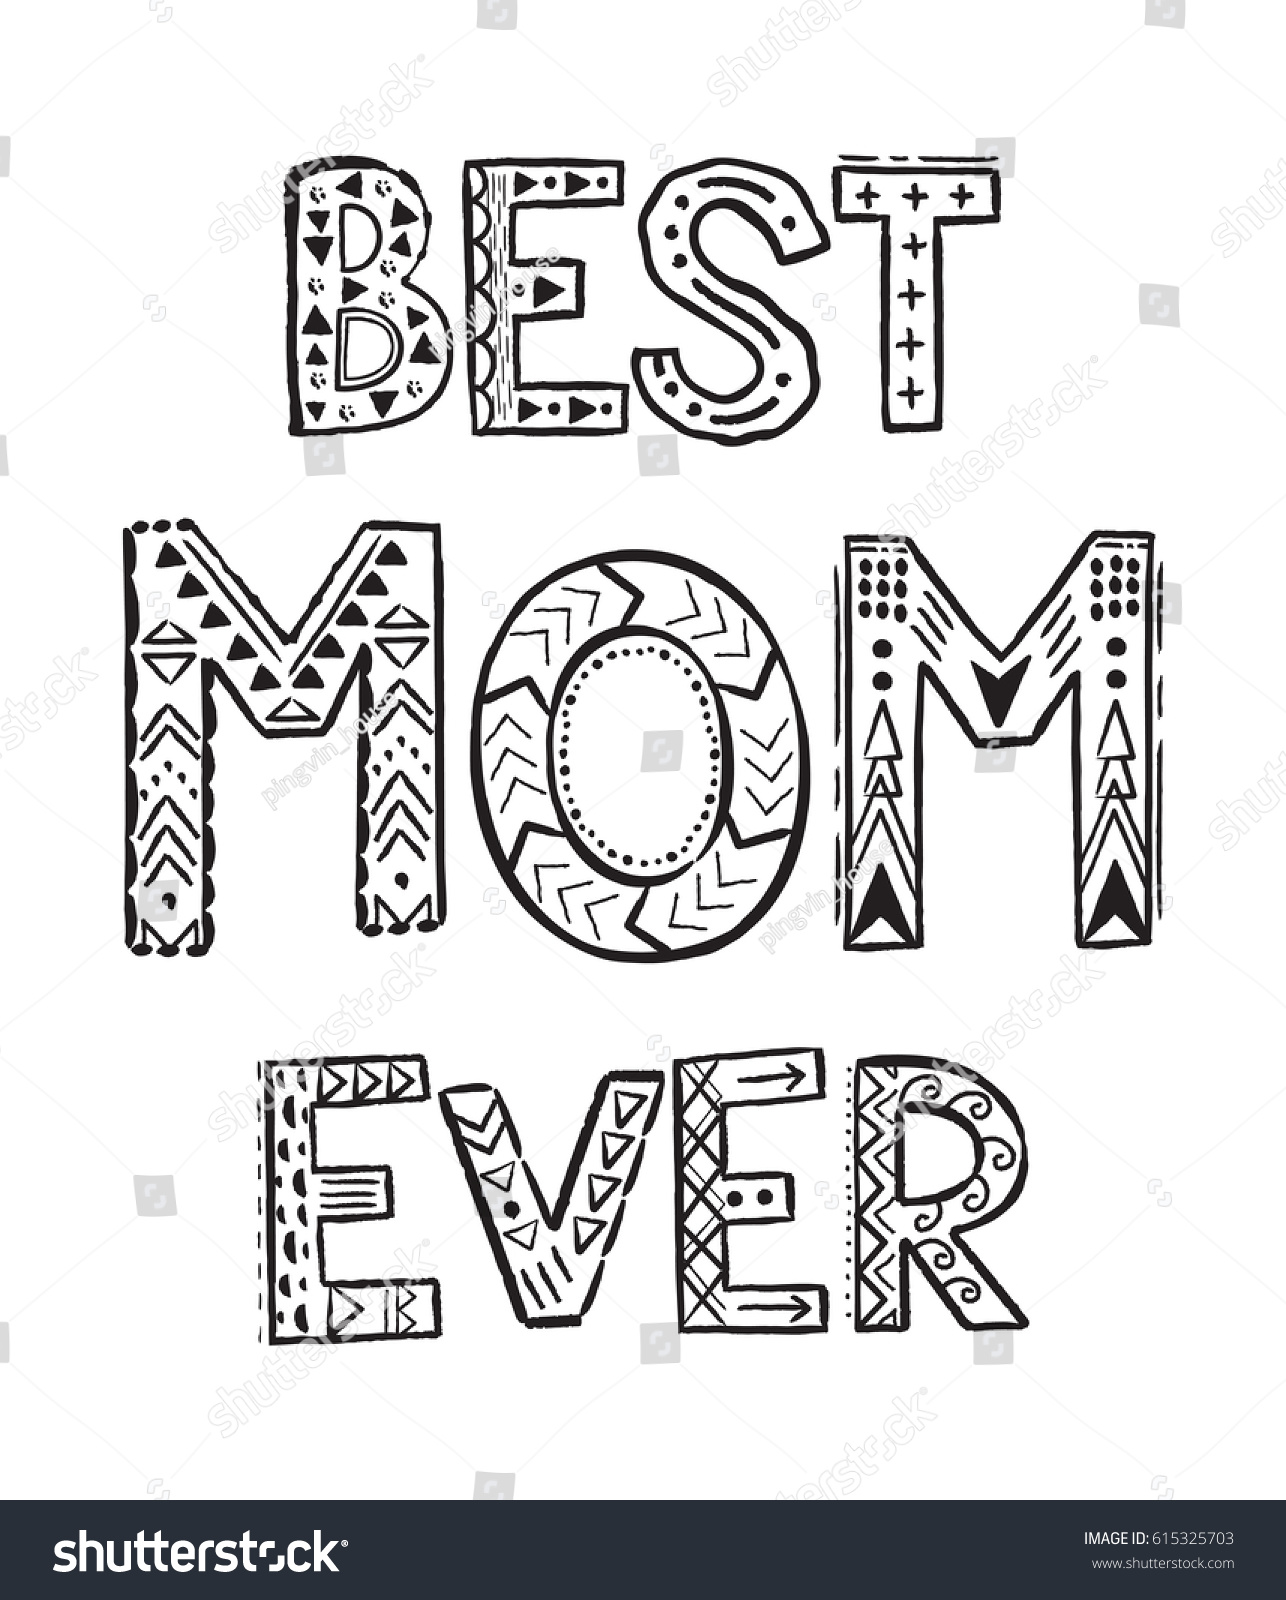 Best Mom Ever Coloring Pages Coloring Stock Vector (Royalty Free ...